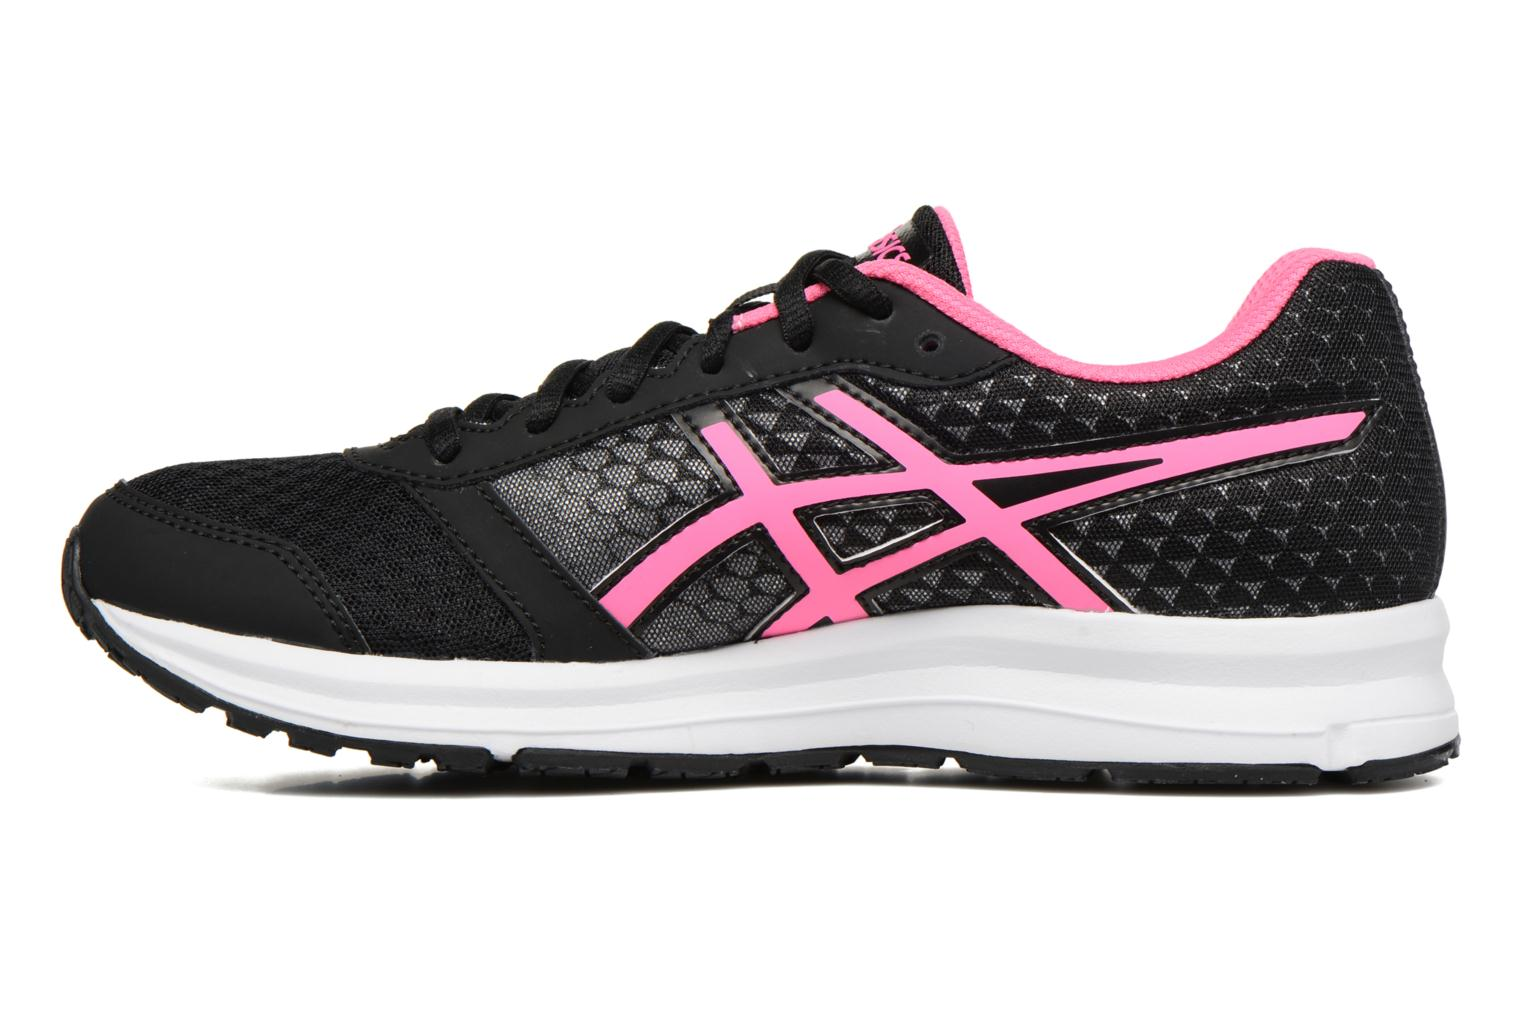 Lady Patriot 8 Black/Hot pink/White